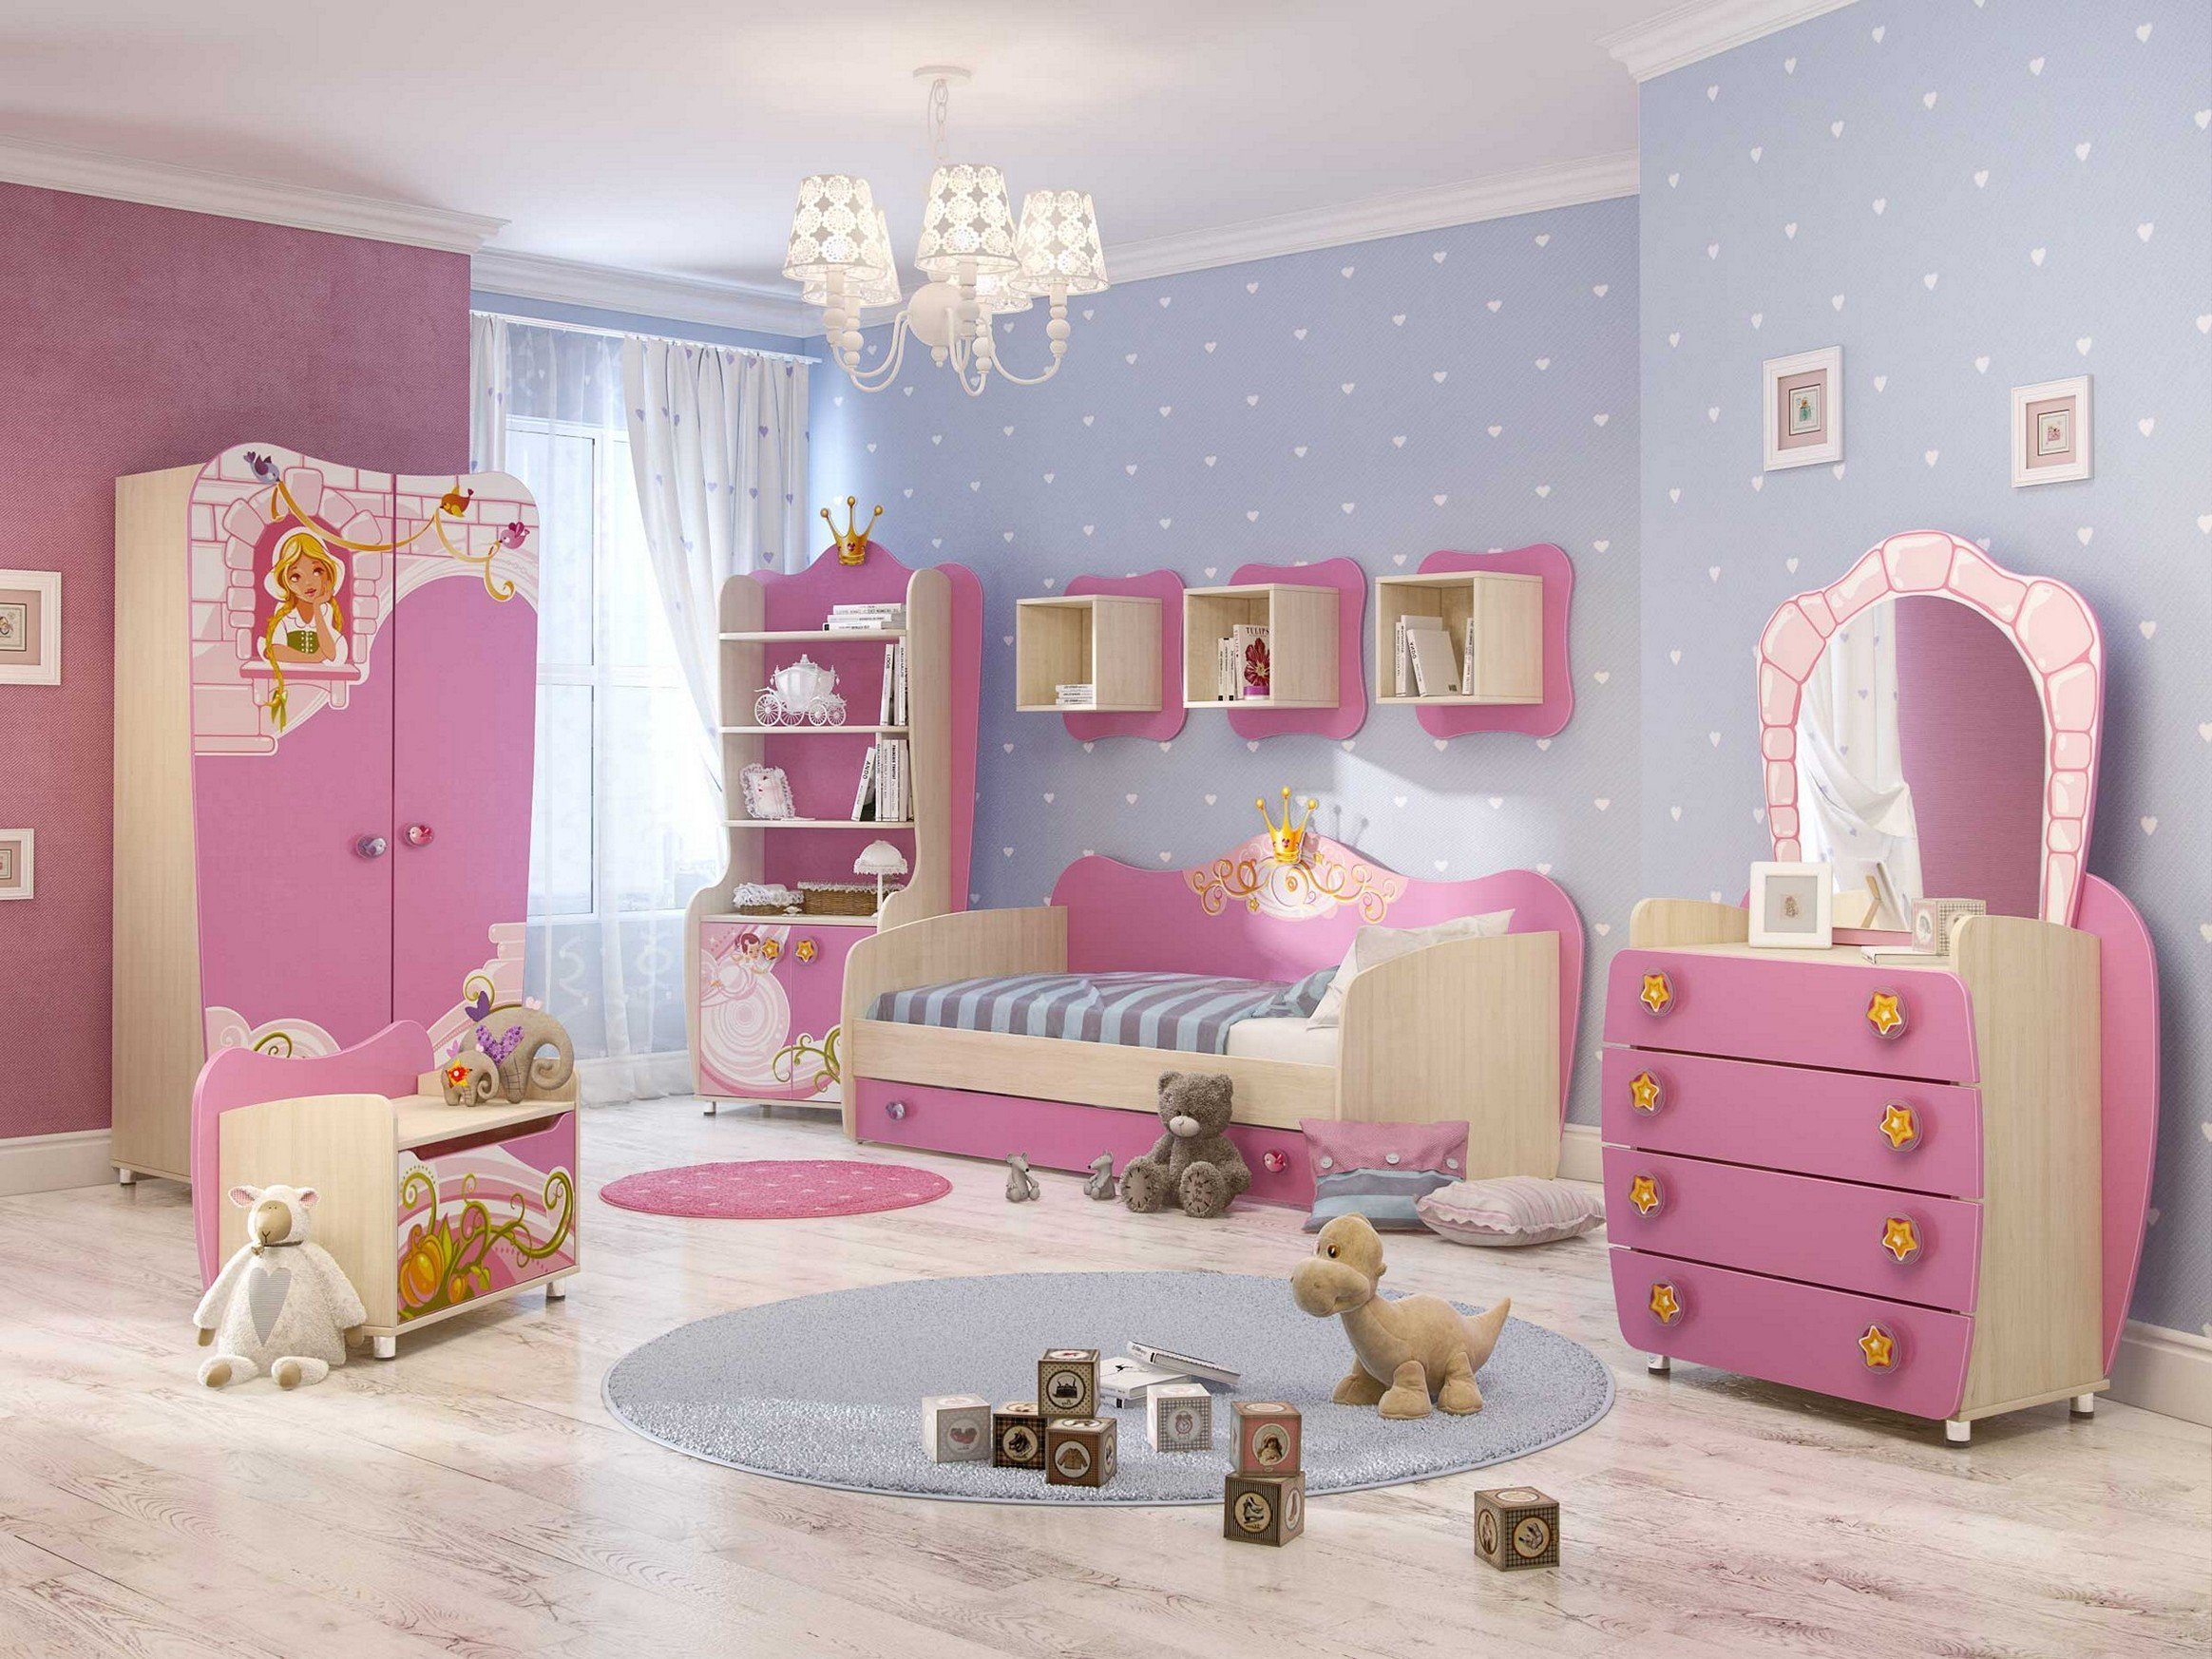 Best Top 10 Girls Bedroom Paint Ideas 2017 Theydesign Net Theydesign Net With Pictures